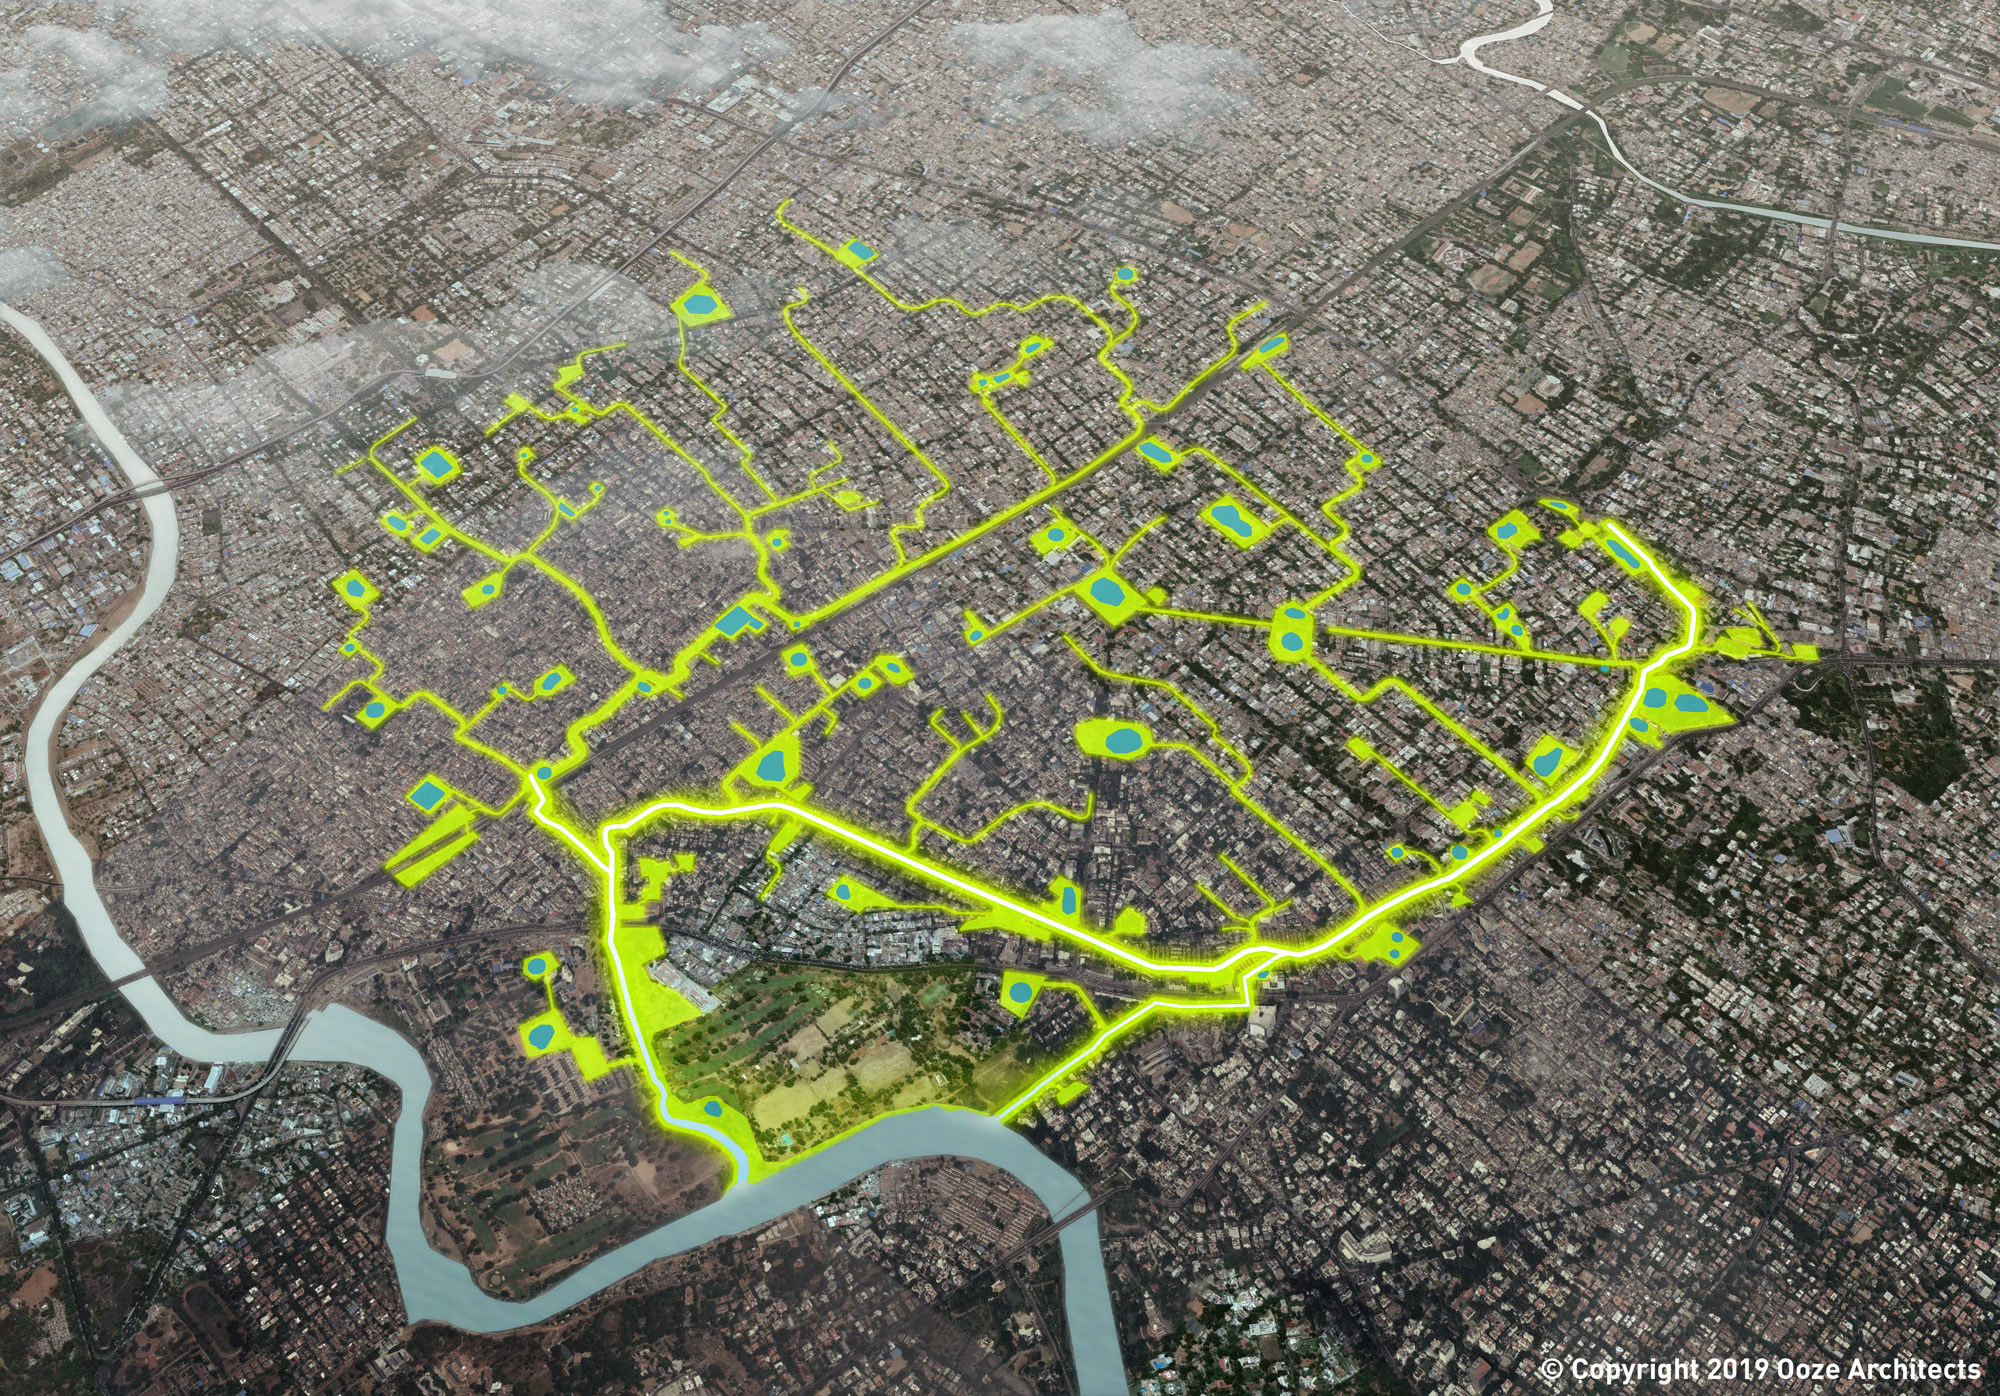 Aerial view of the Mambalam project ©2019 Ooze Architects